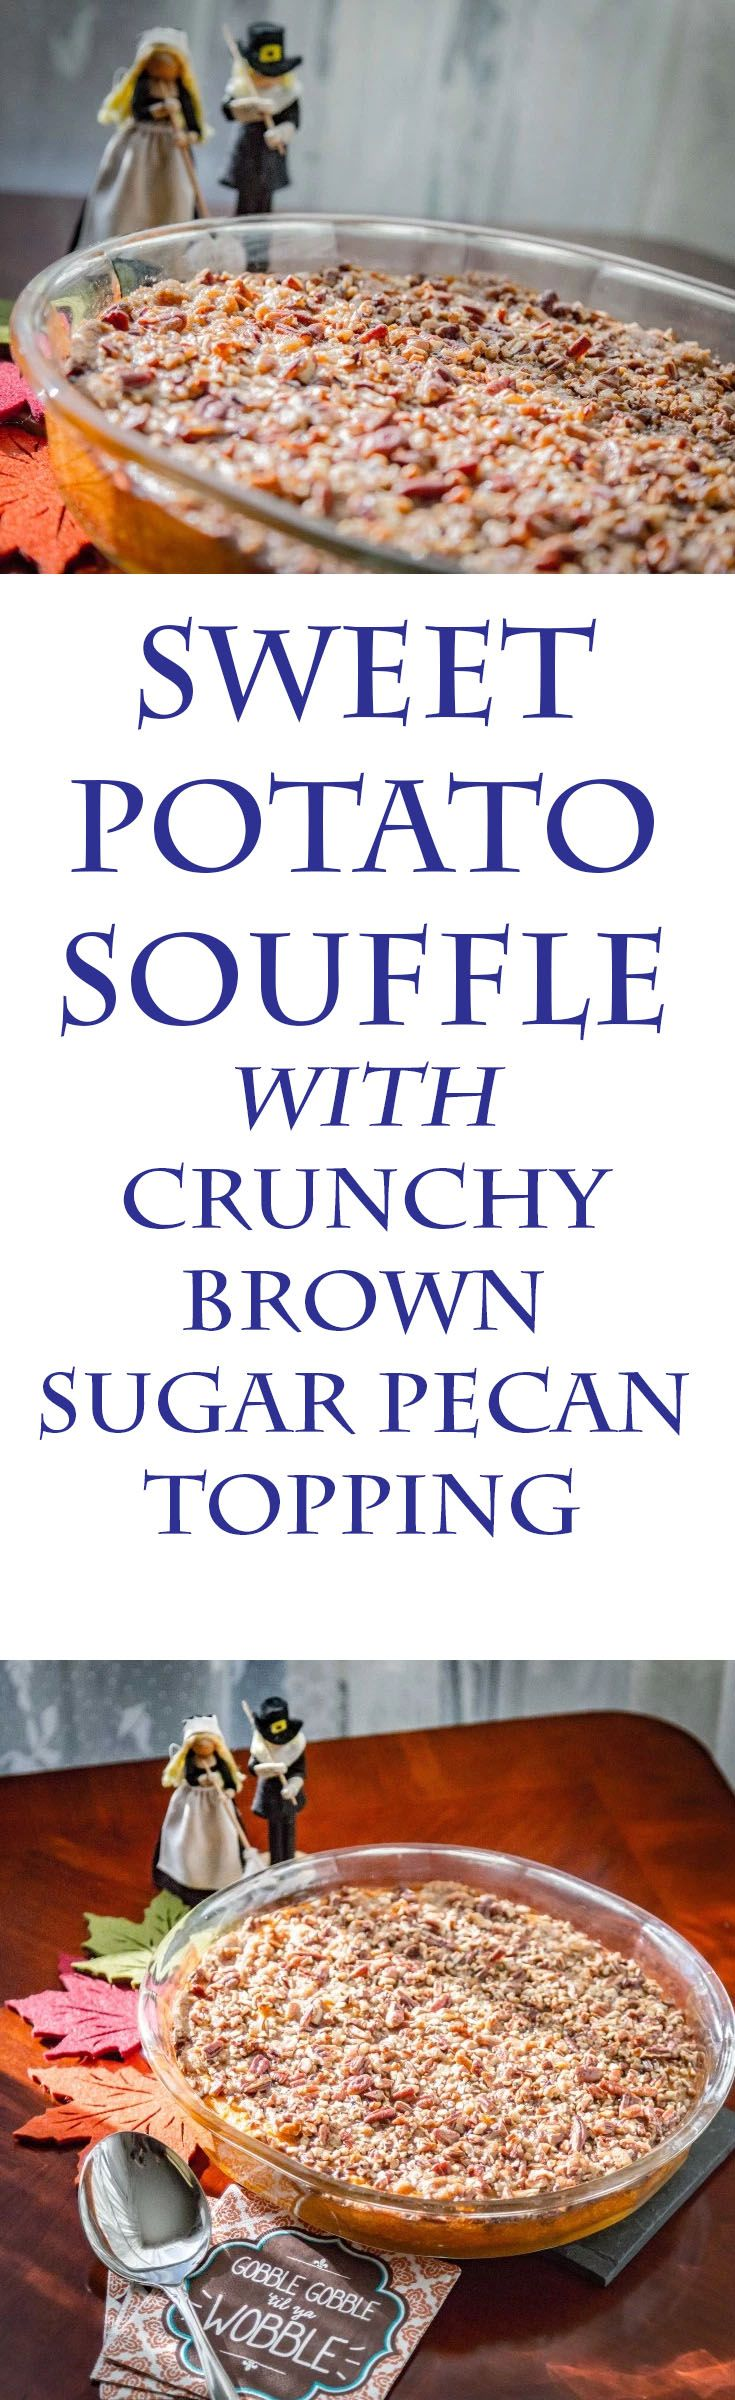 Sweet Potato Souffle with a crunchy brown sugar pecan topping, a Southern favorite